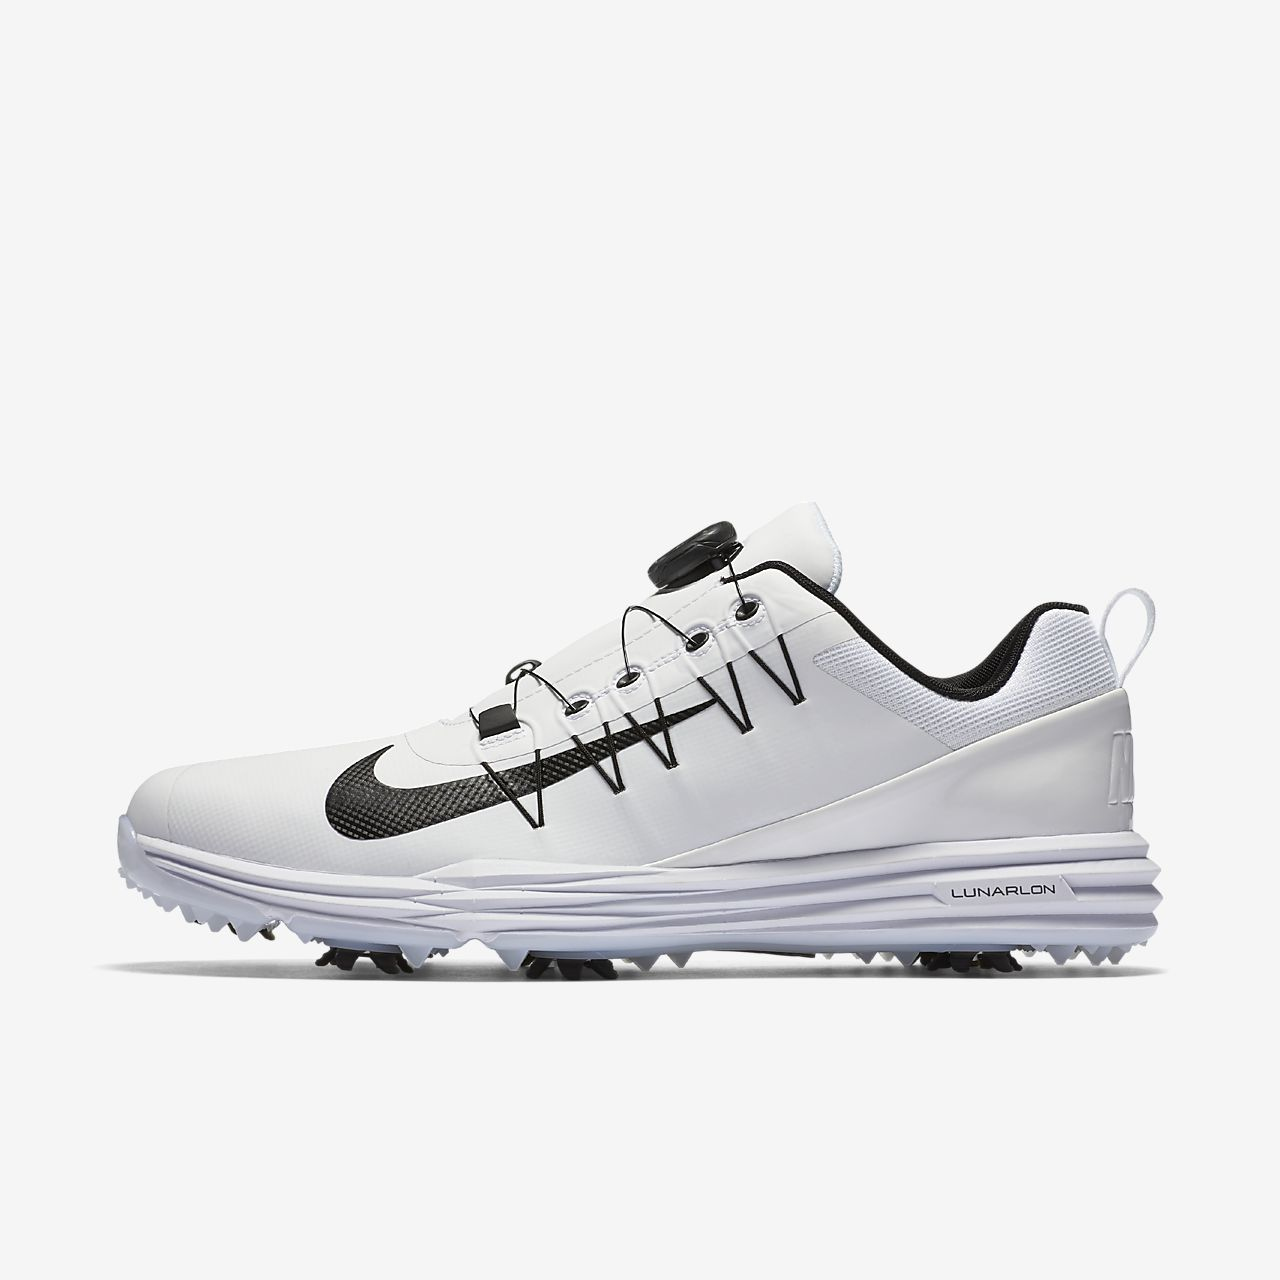 ... Nike Lunar Command 2 Boa Men's Golf Shoe